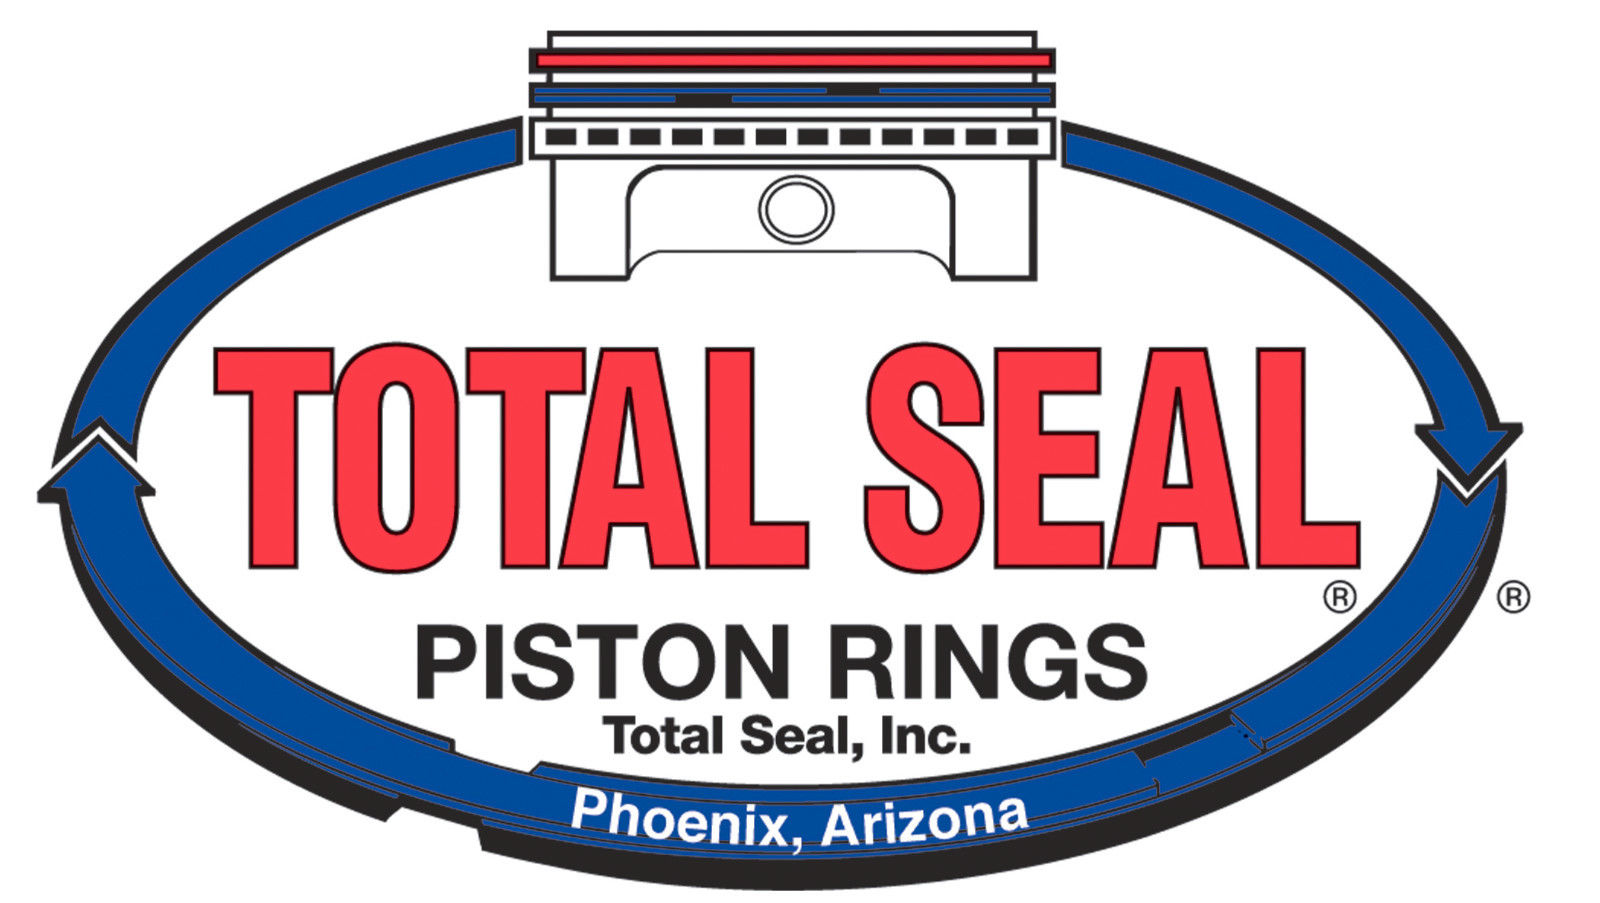 Total Seal CR3690-65 Classic Race Rings 4.060